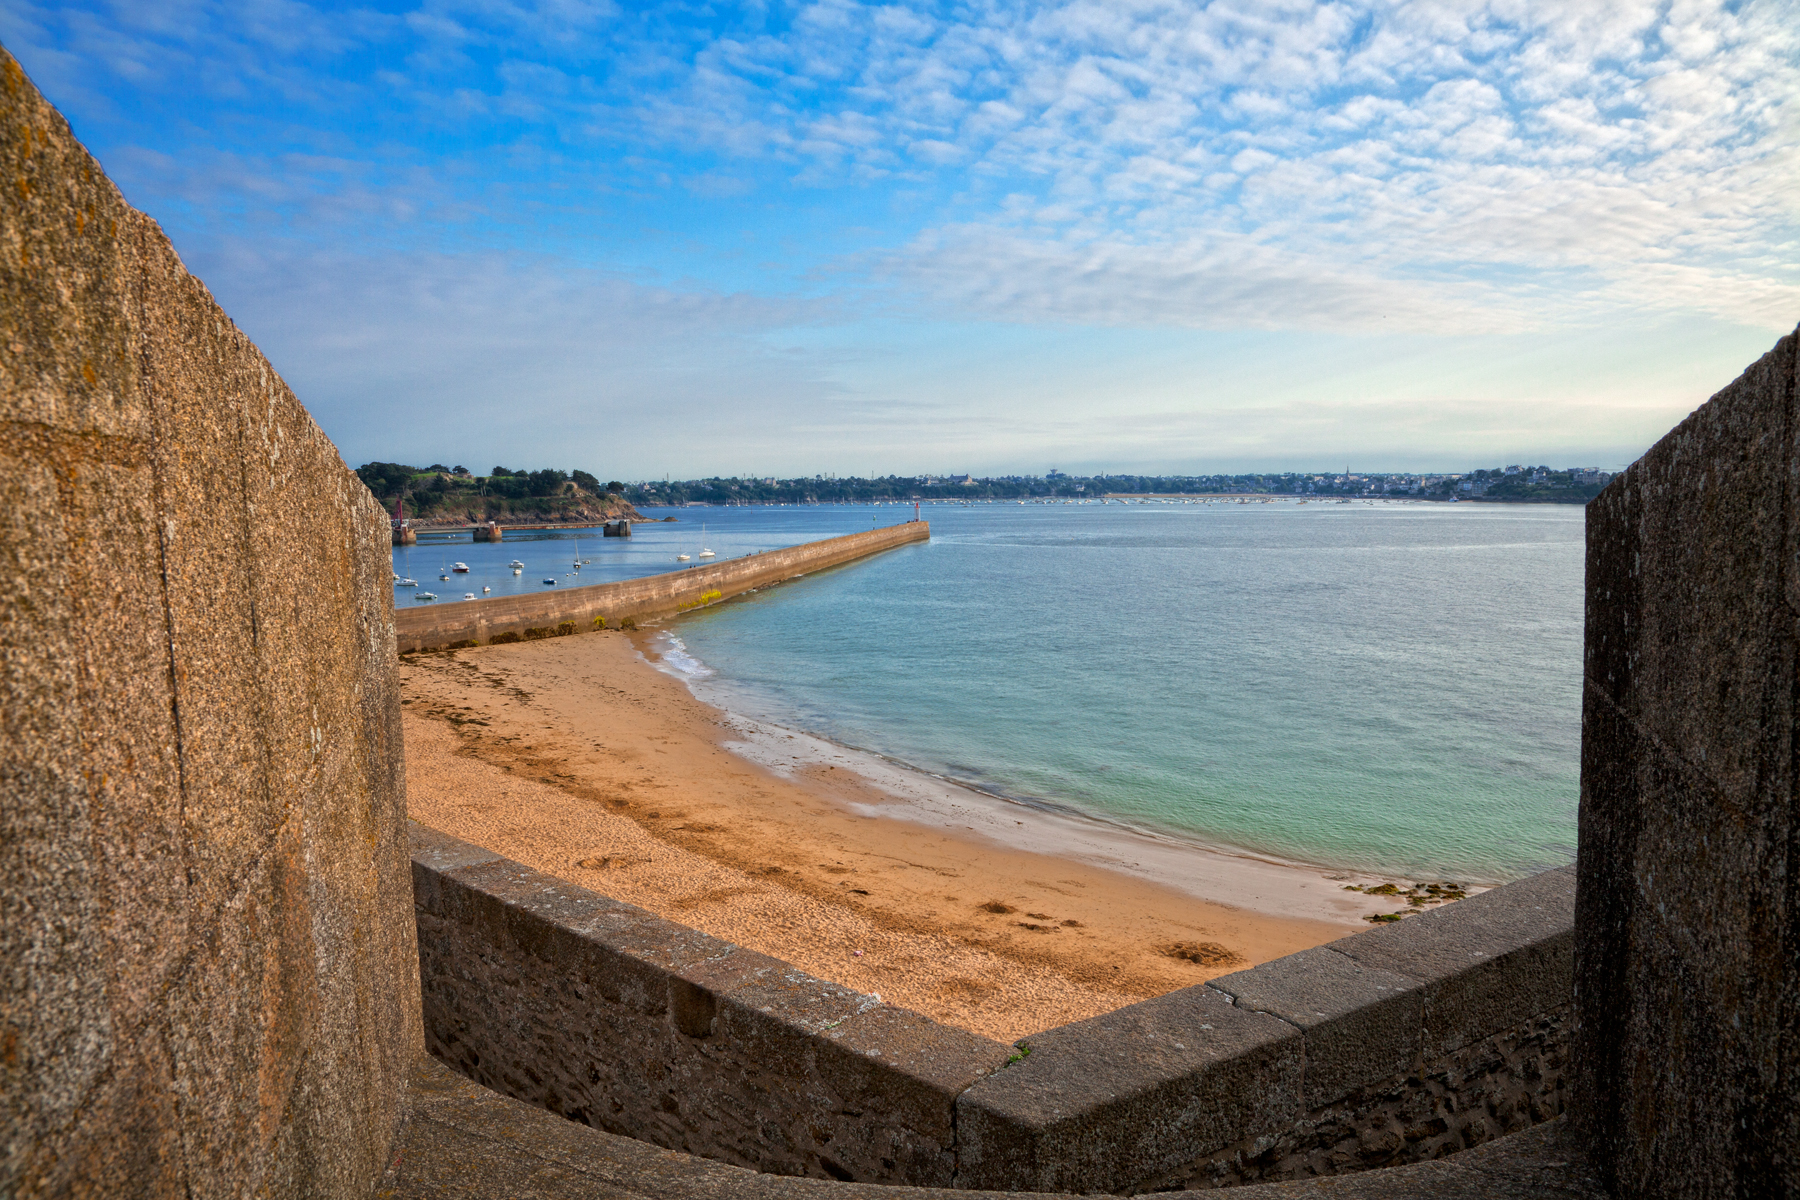 Saint-malo beach scenery - hdr photo